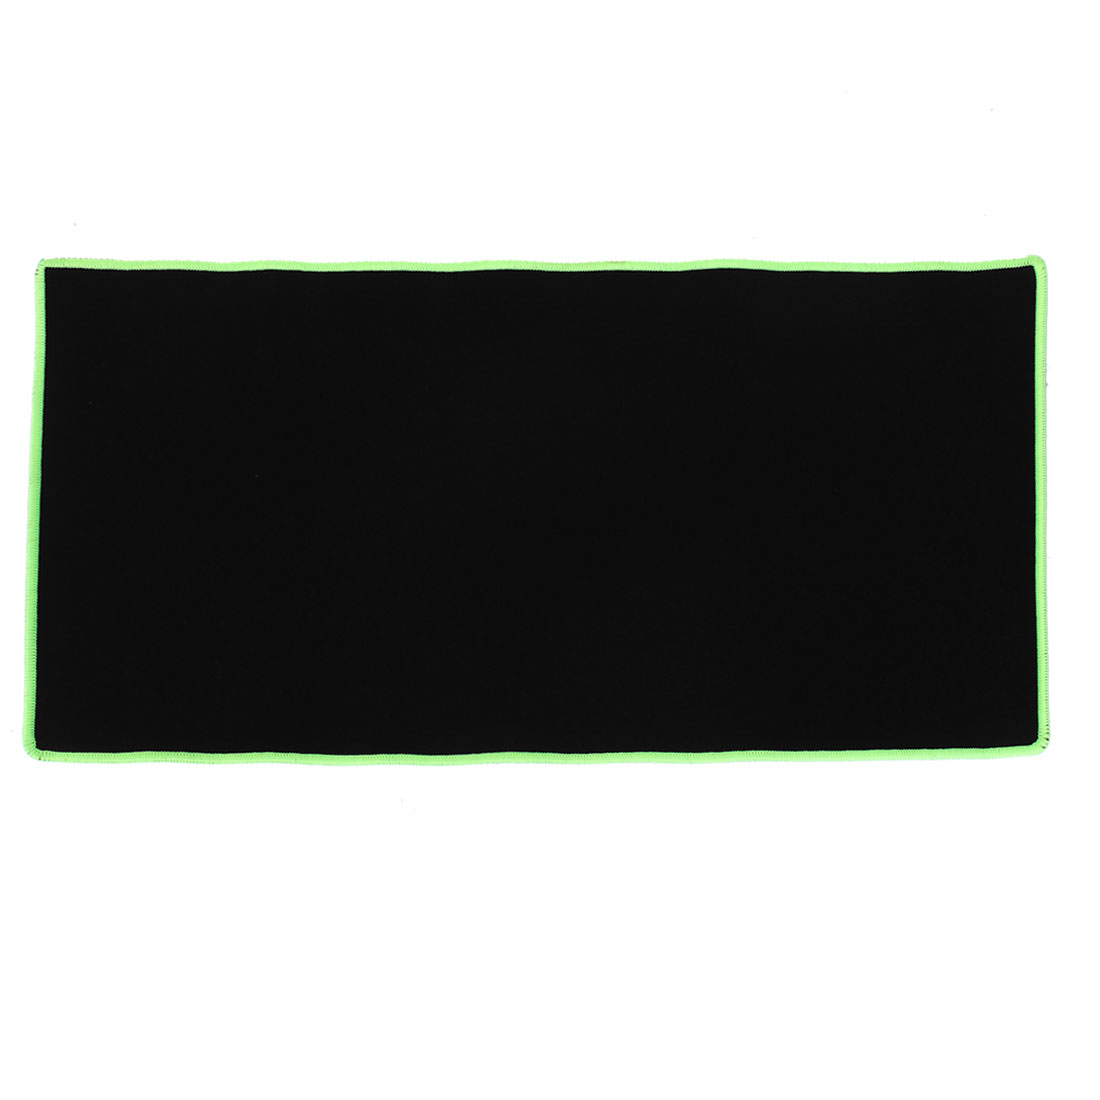 Office 24x12 Inch Desk Pad Protector Mat Black Green for Desktop Laptop